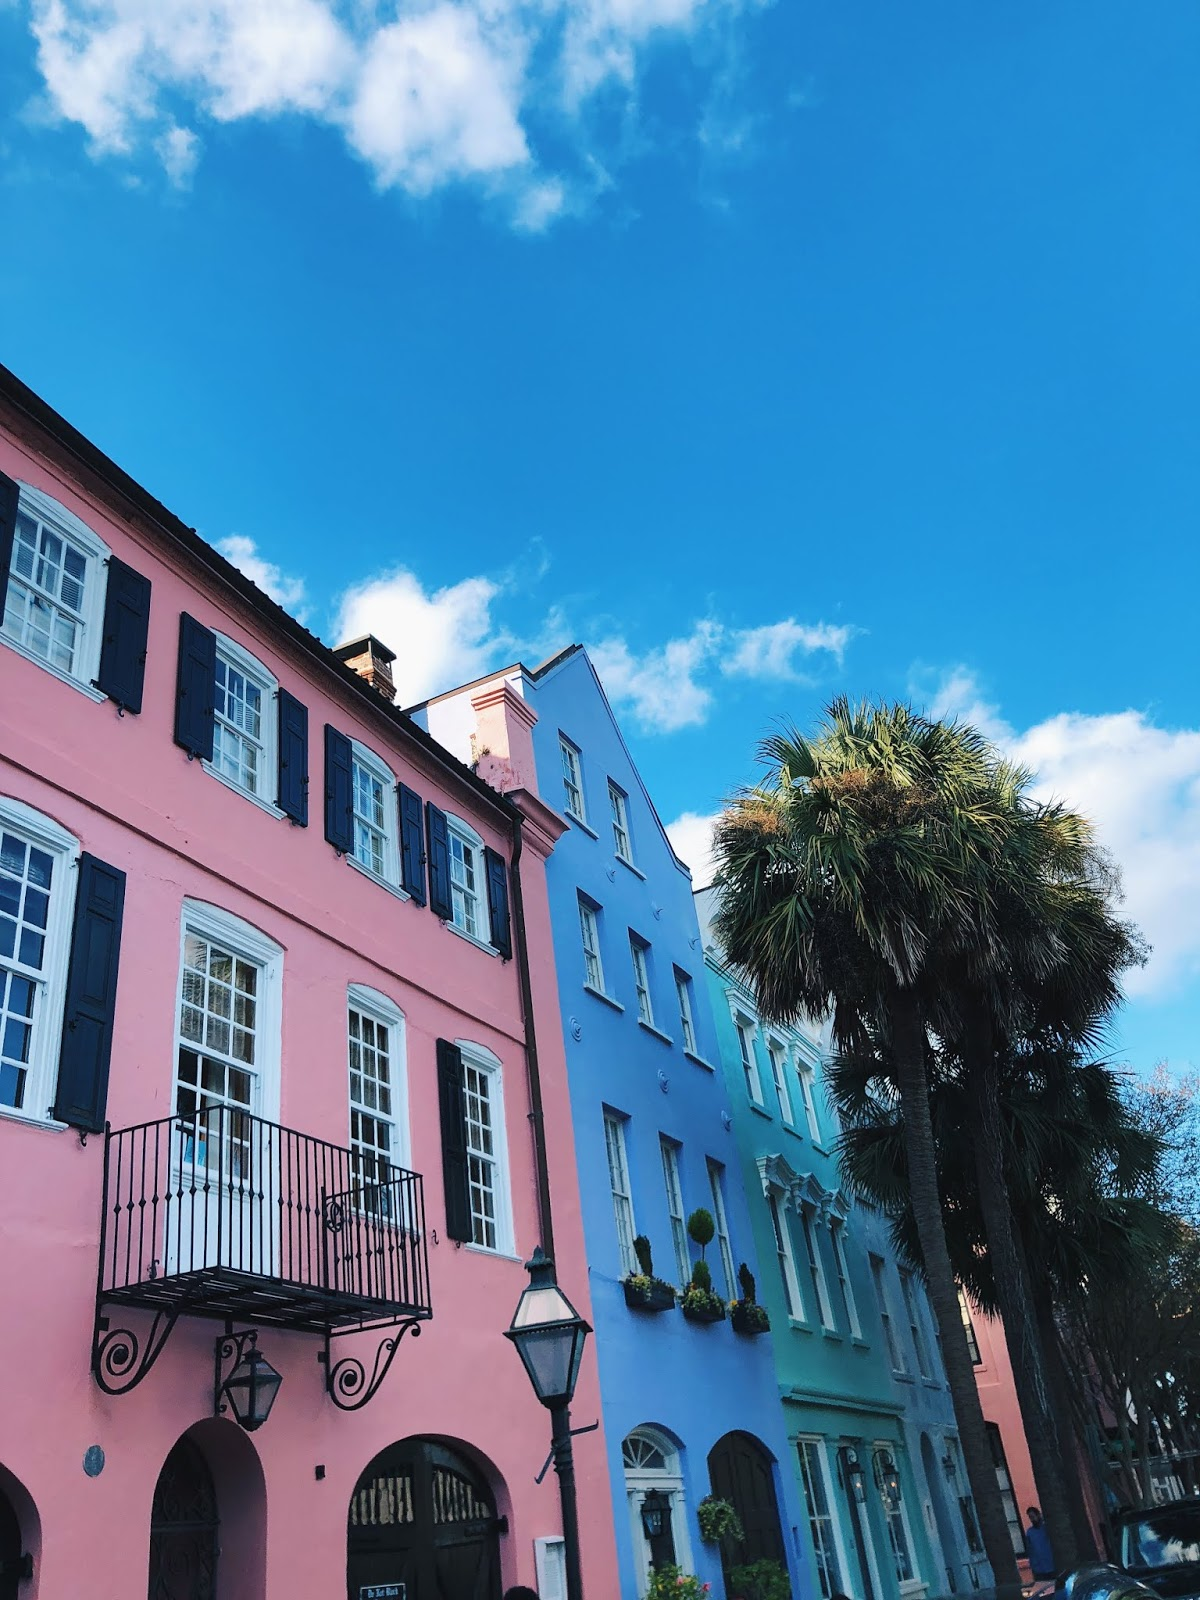 Colorful buildings on rainbow row in Charleston, SC